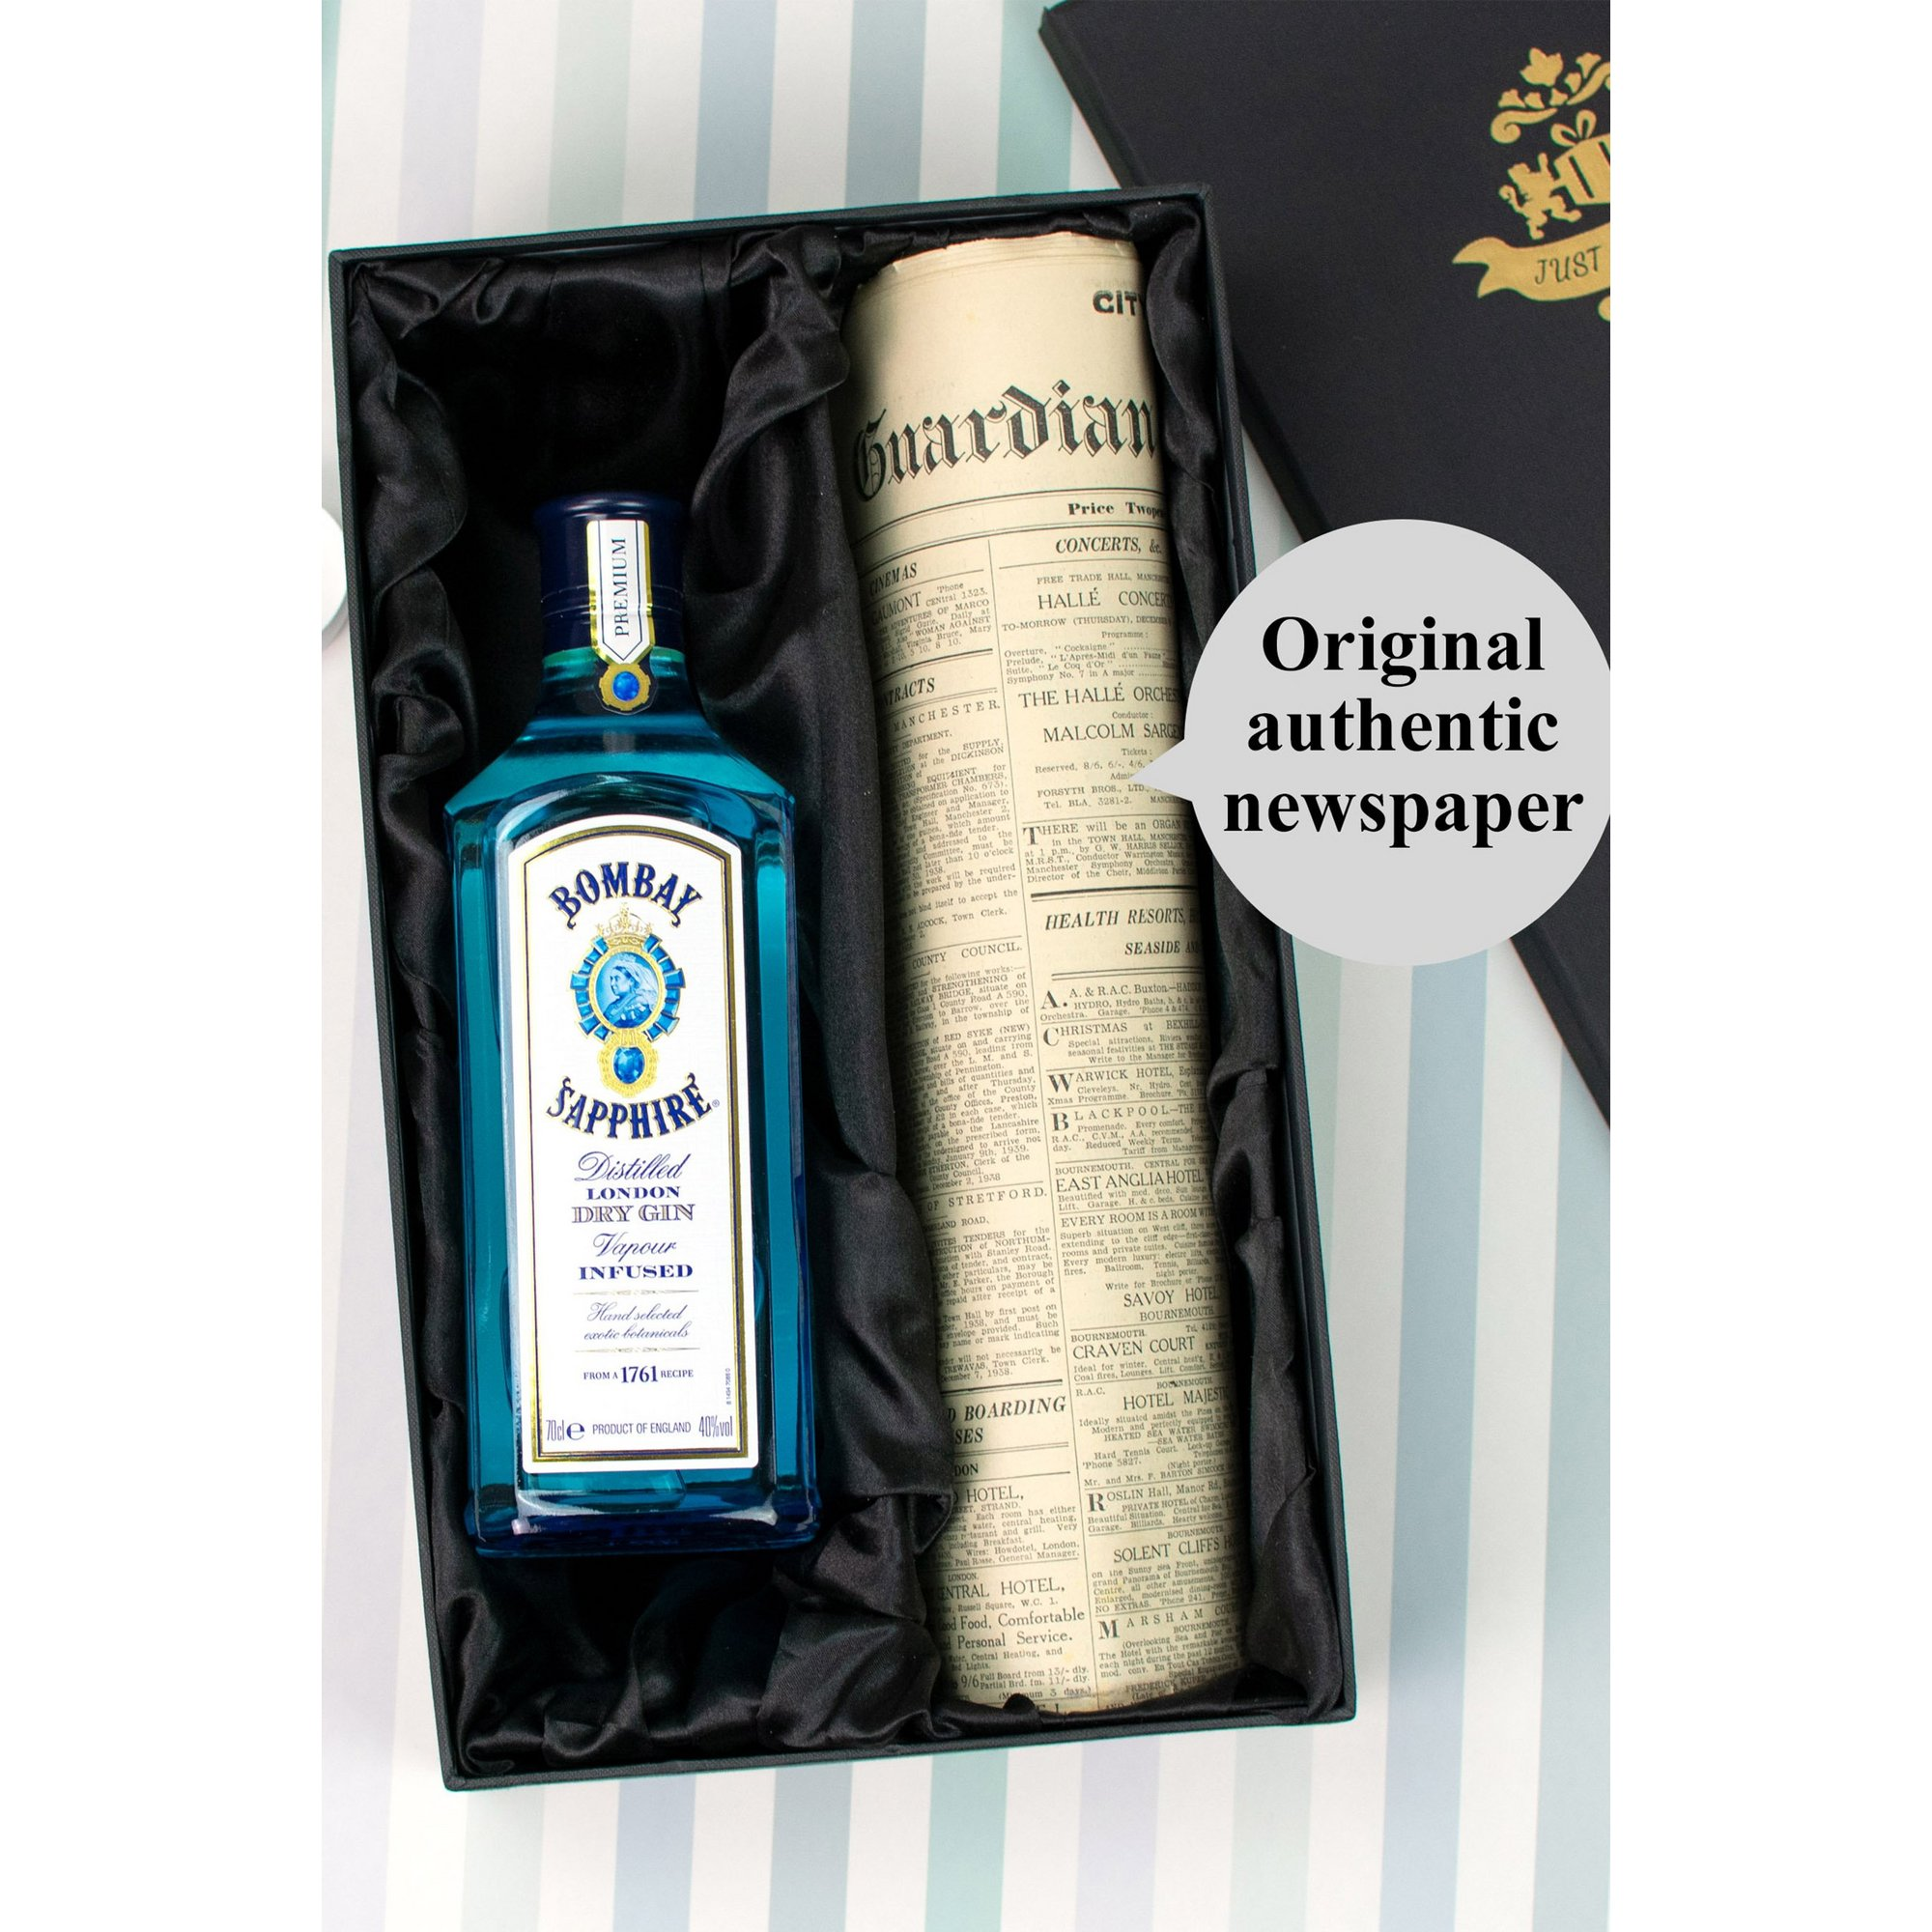 Image of Bombay Sapphire Gin and Personalised Original Newspaper